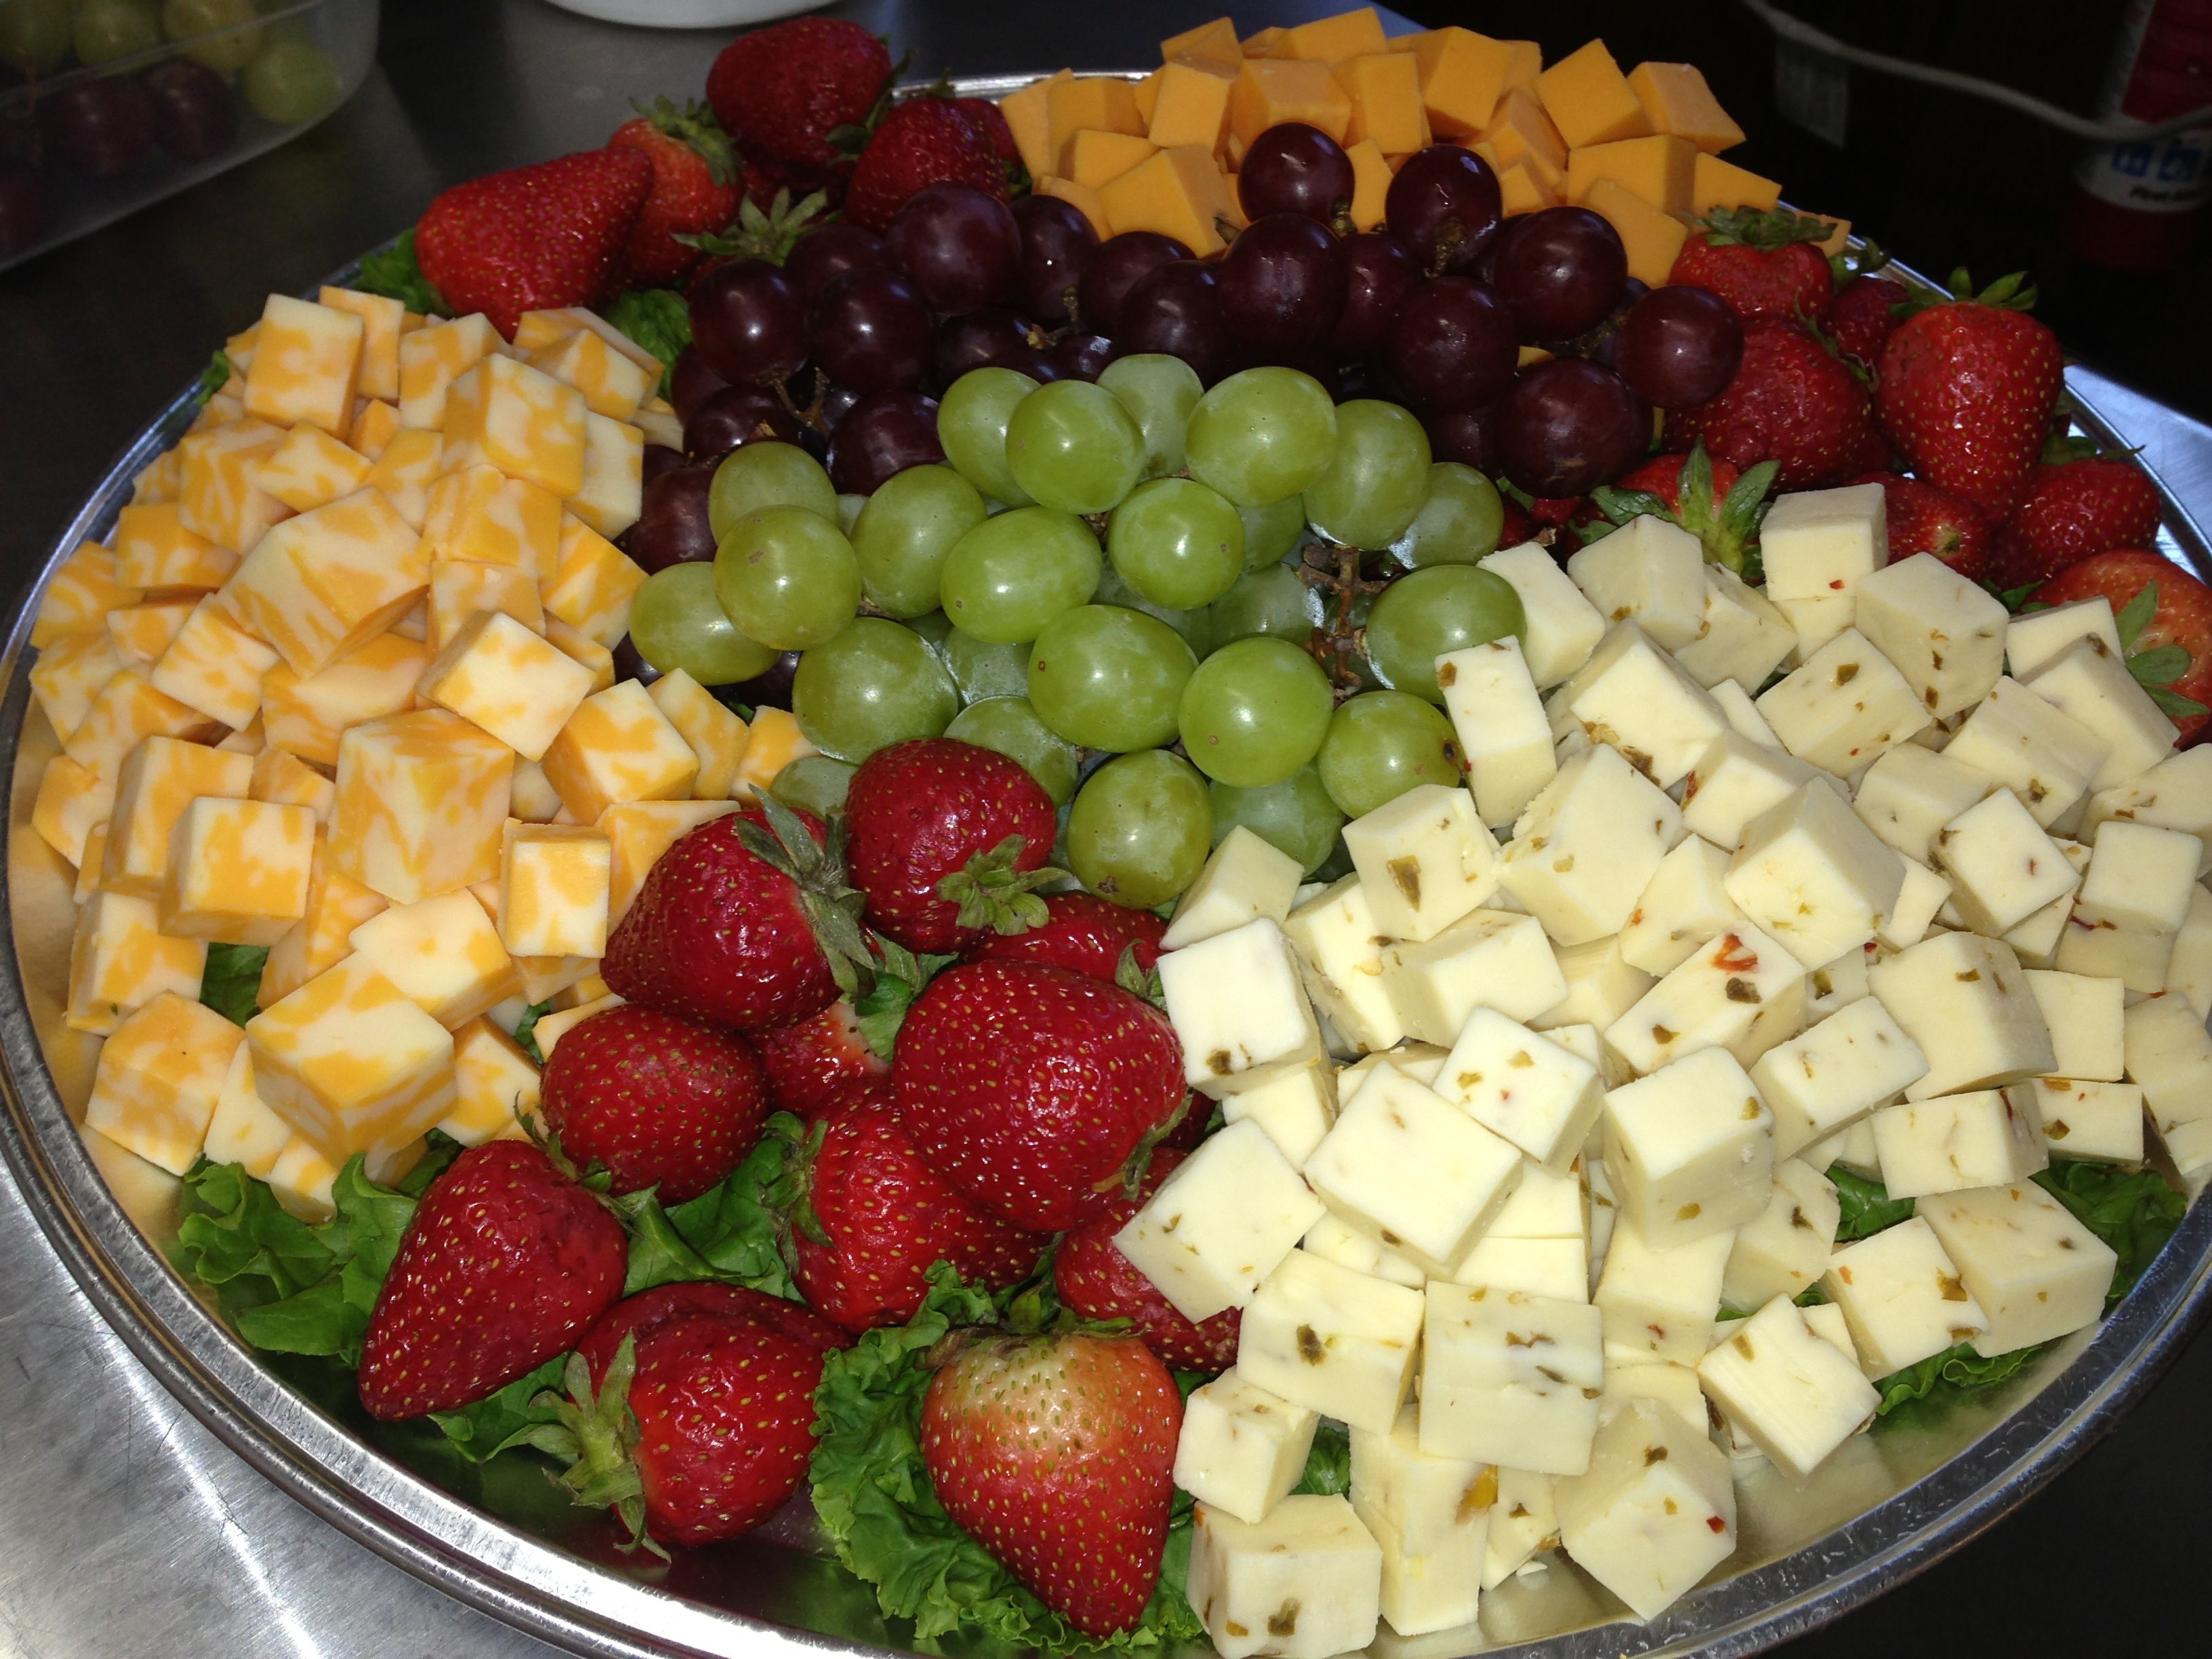 cheese and fruit platter ideas for weddings | Kitchen ...